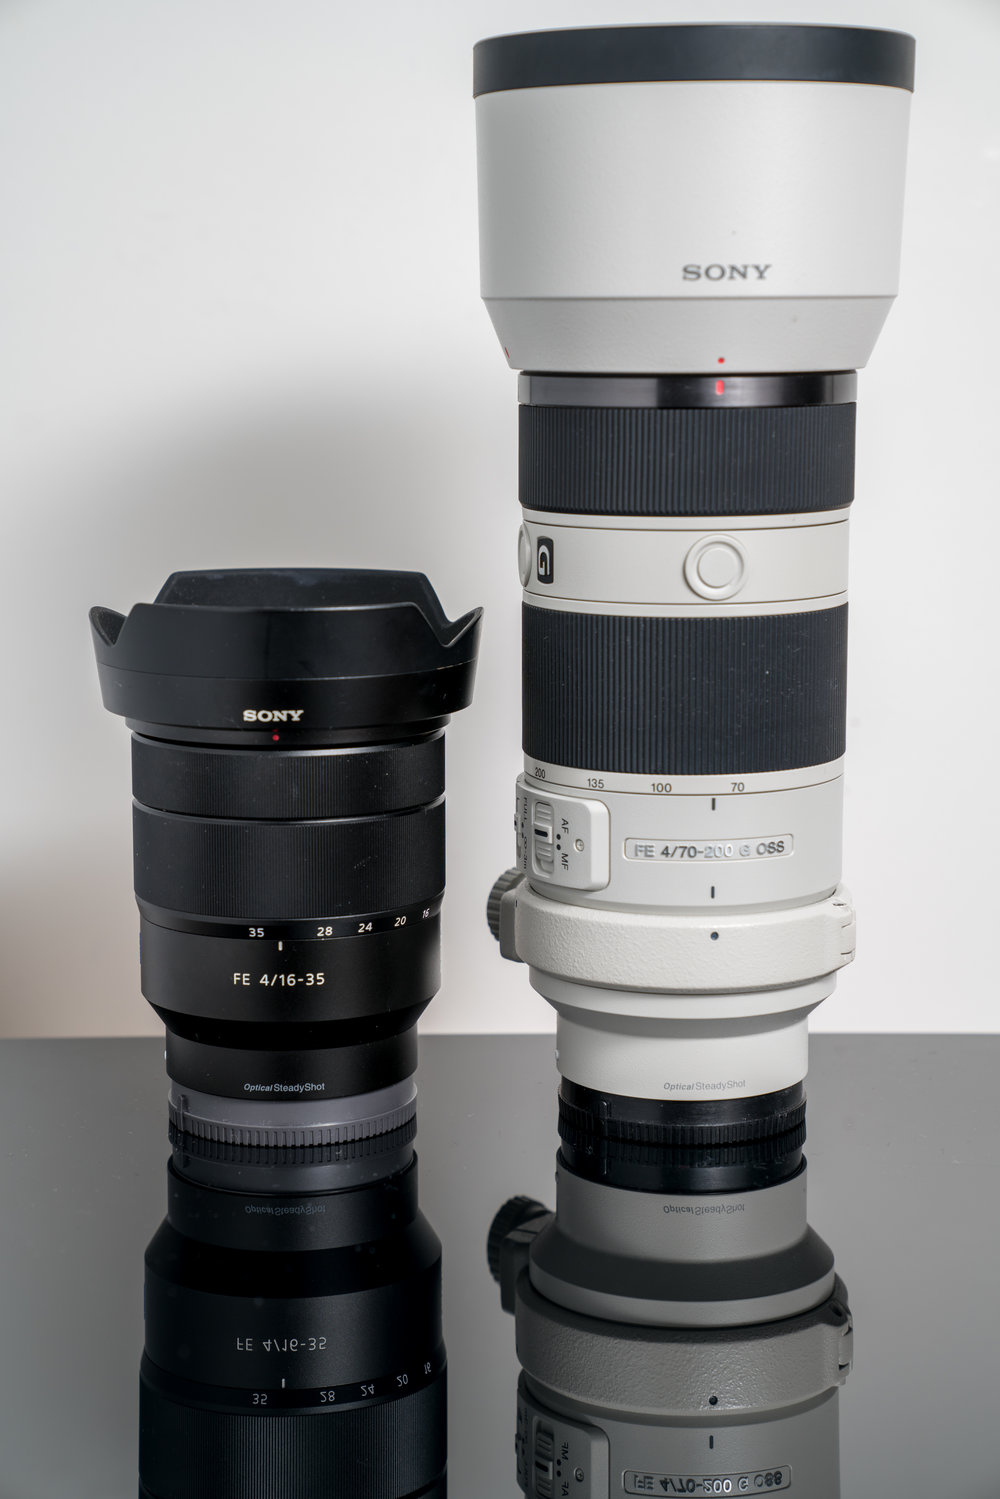 Two existing lenses, from left to right the Sony 16-35 f4 and the Sony 70-200 f4, both great lenses.